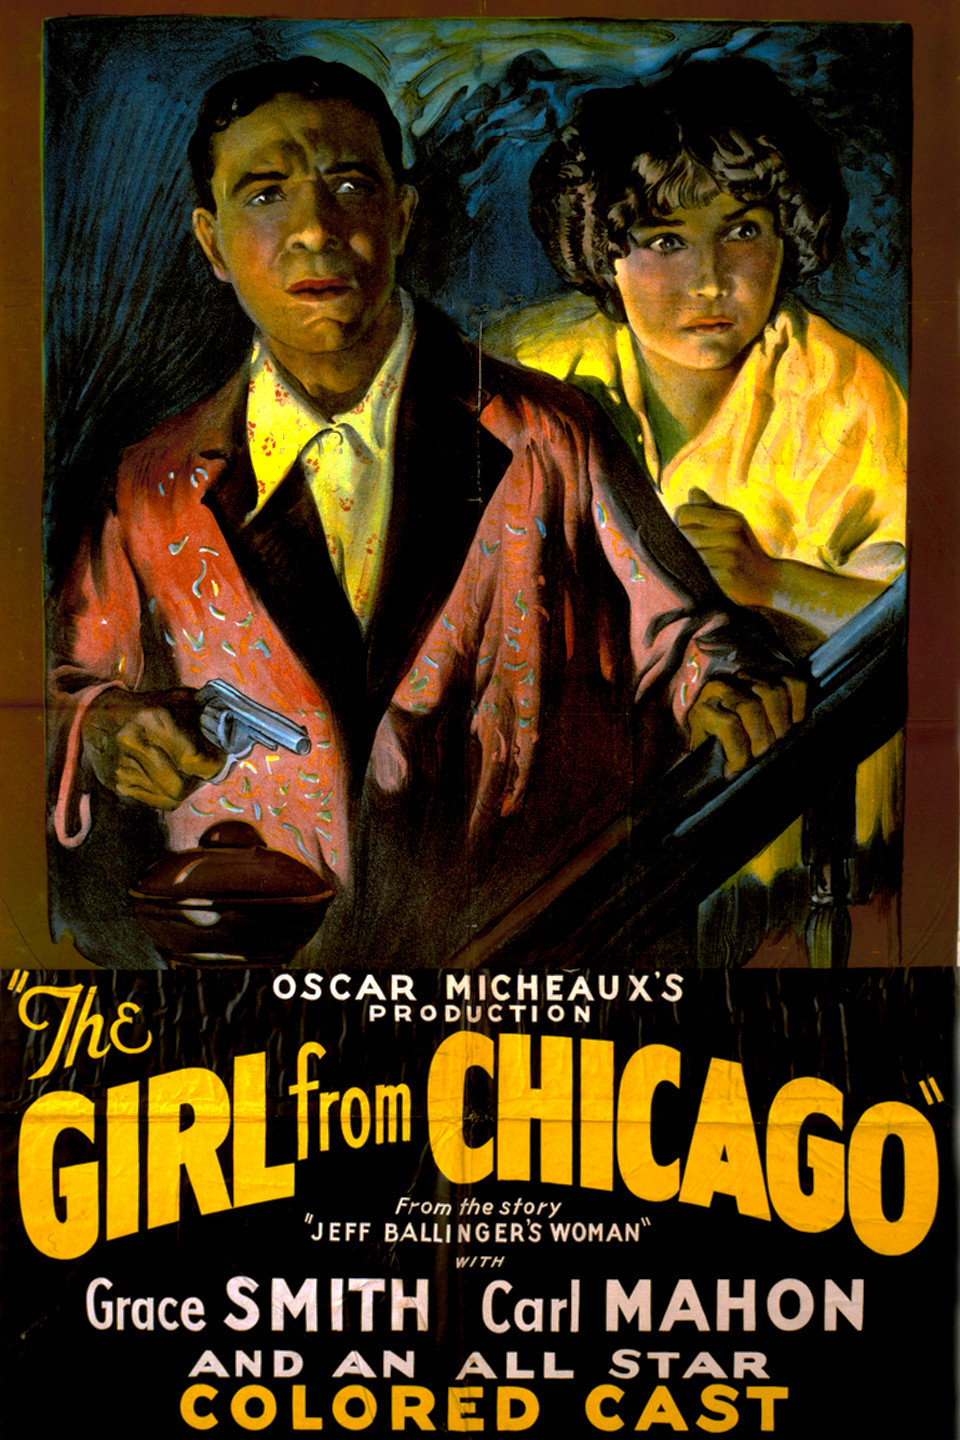 The Girl from Chicago kapak